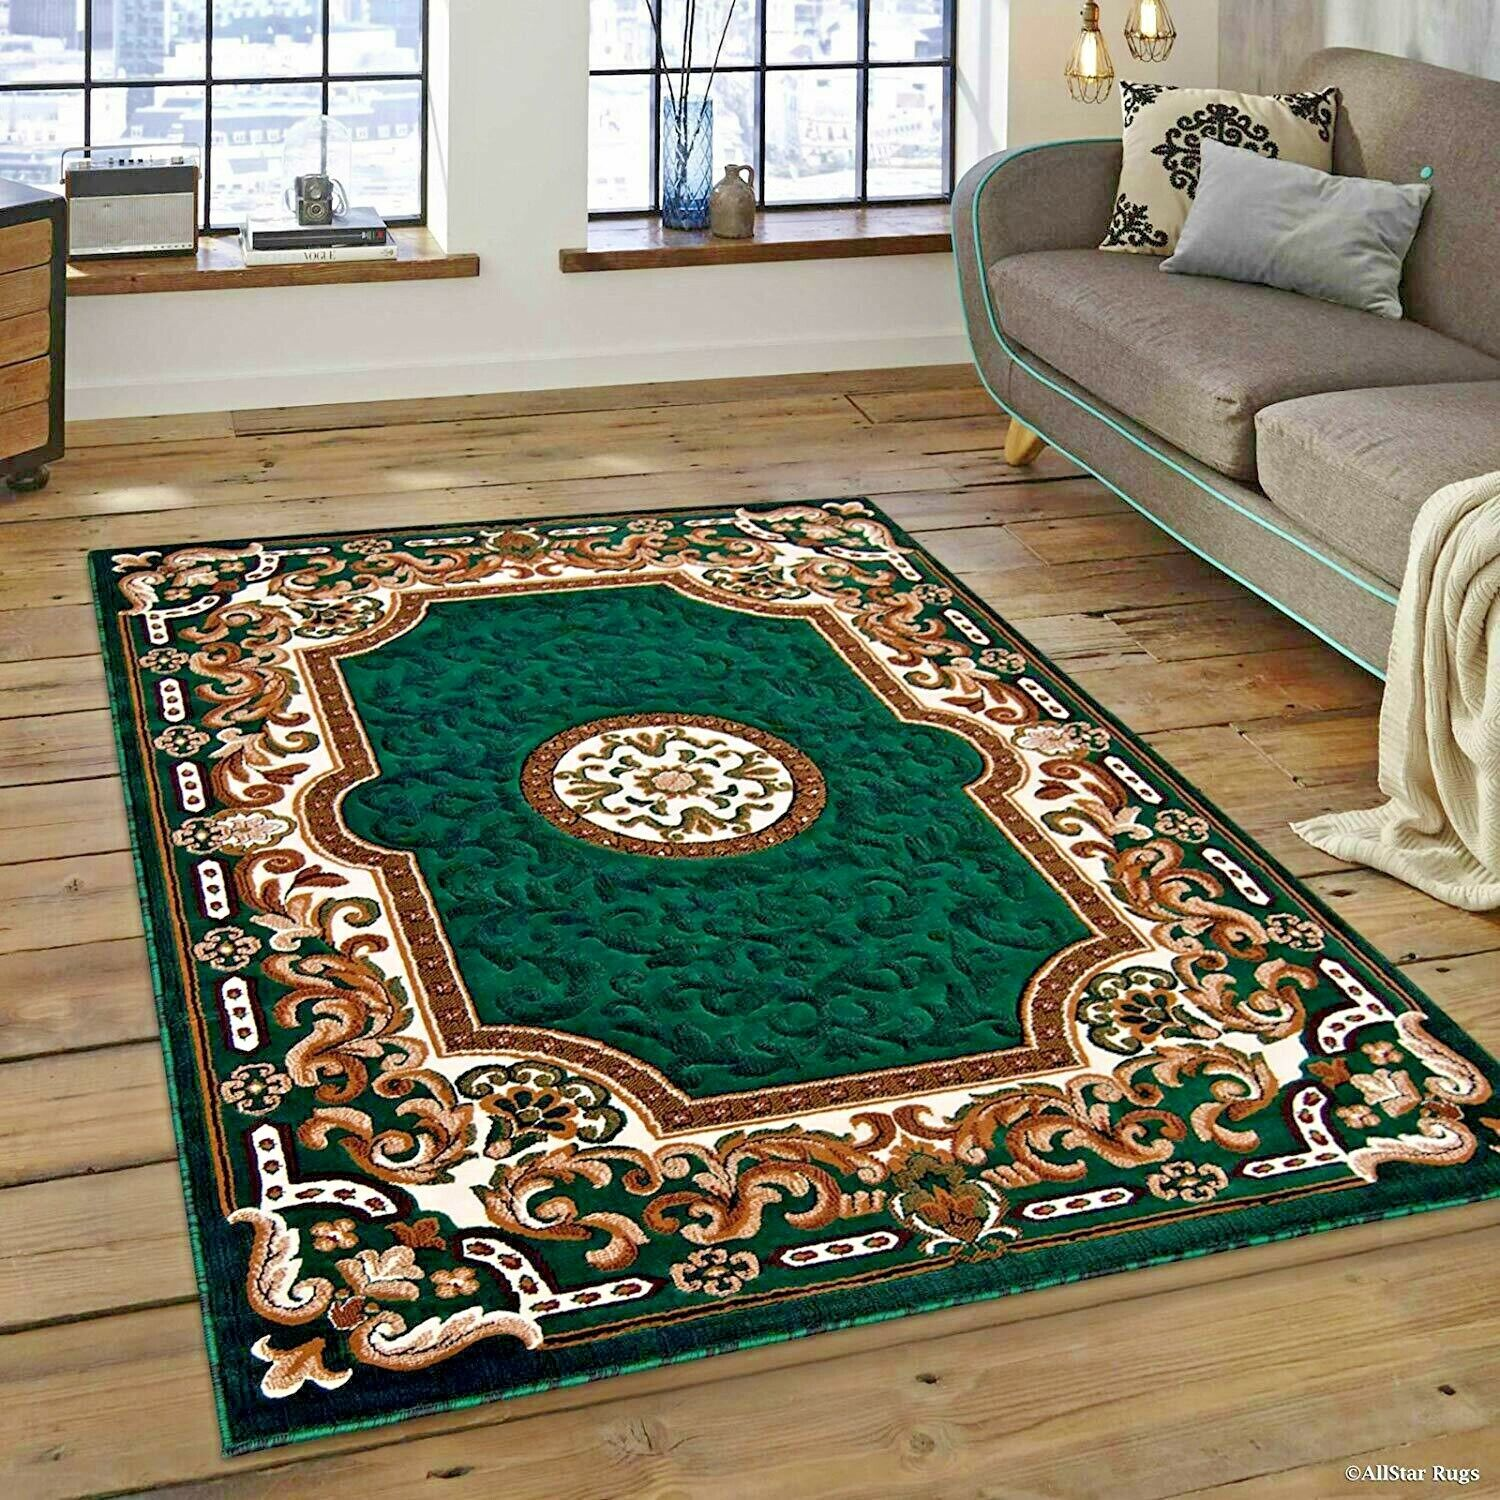 Green Rugs For Living Room.Details About Rugs Area Rugs Carpet 8x10 Rug Oriental Green Large Living Room Floor Big Rugs